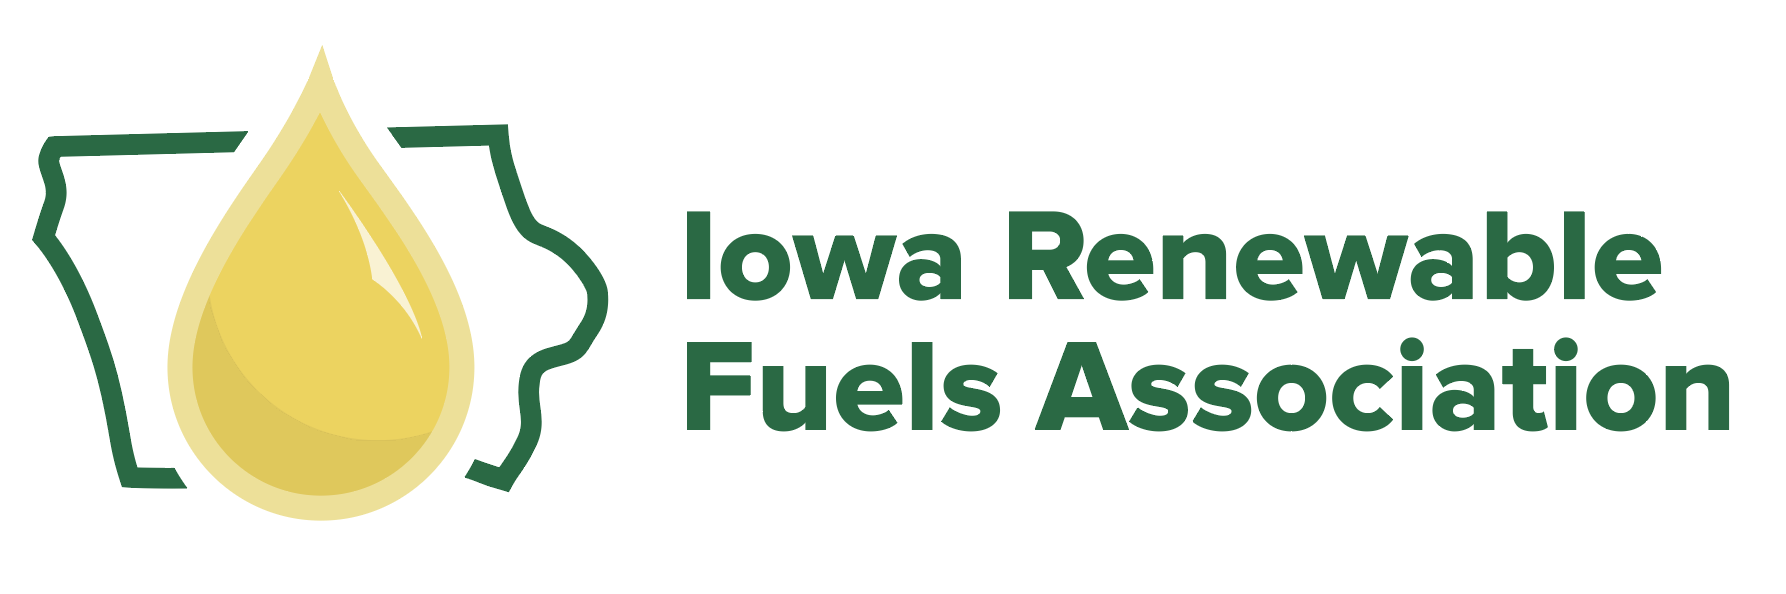 Iowa Renewable Fuels Association